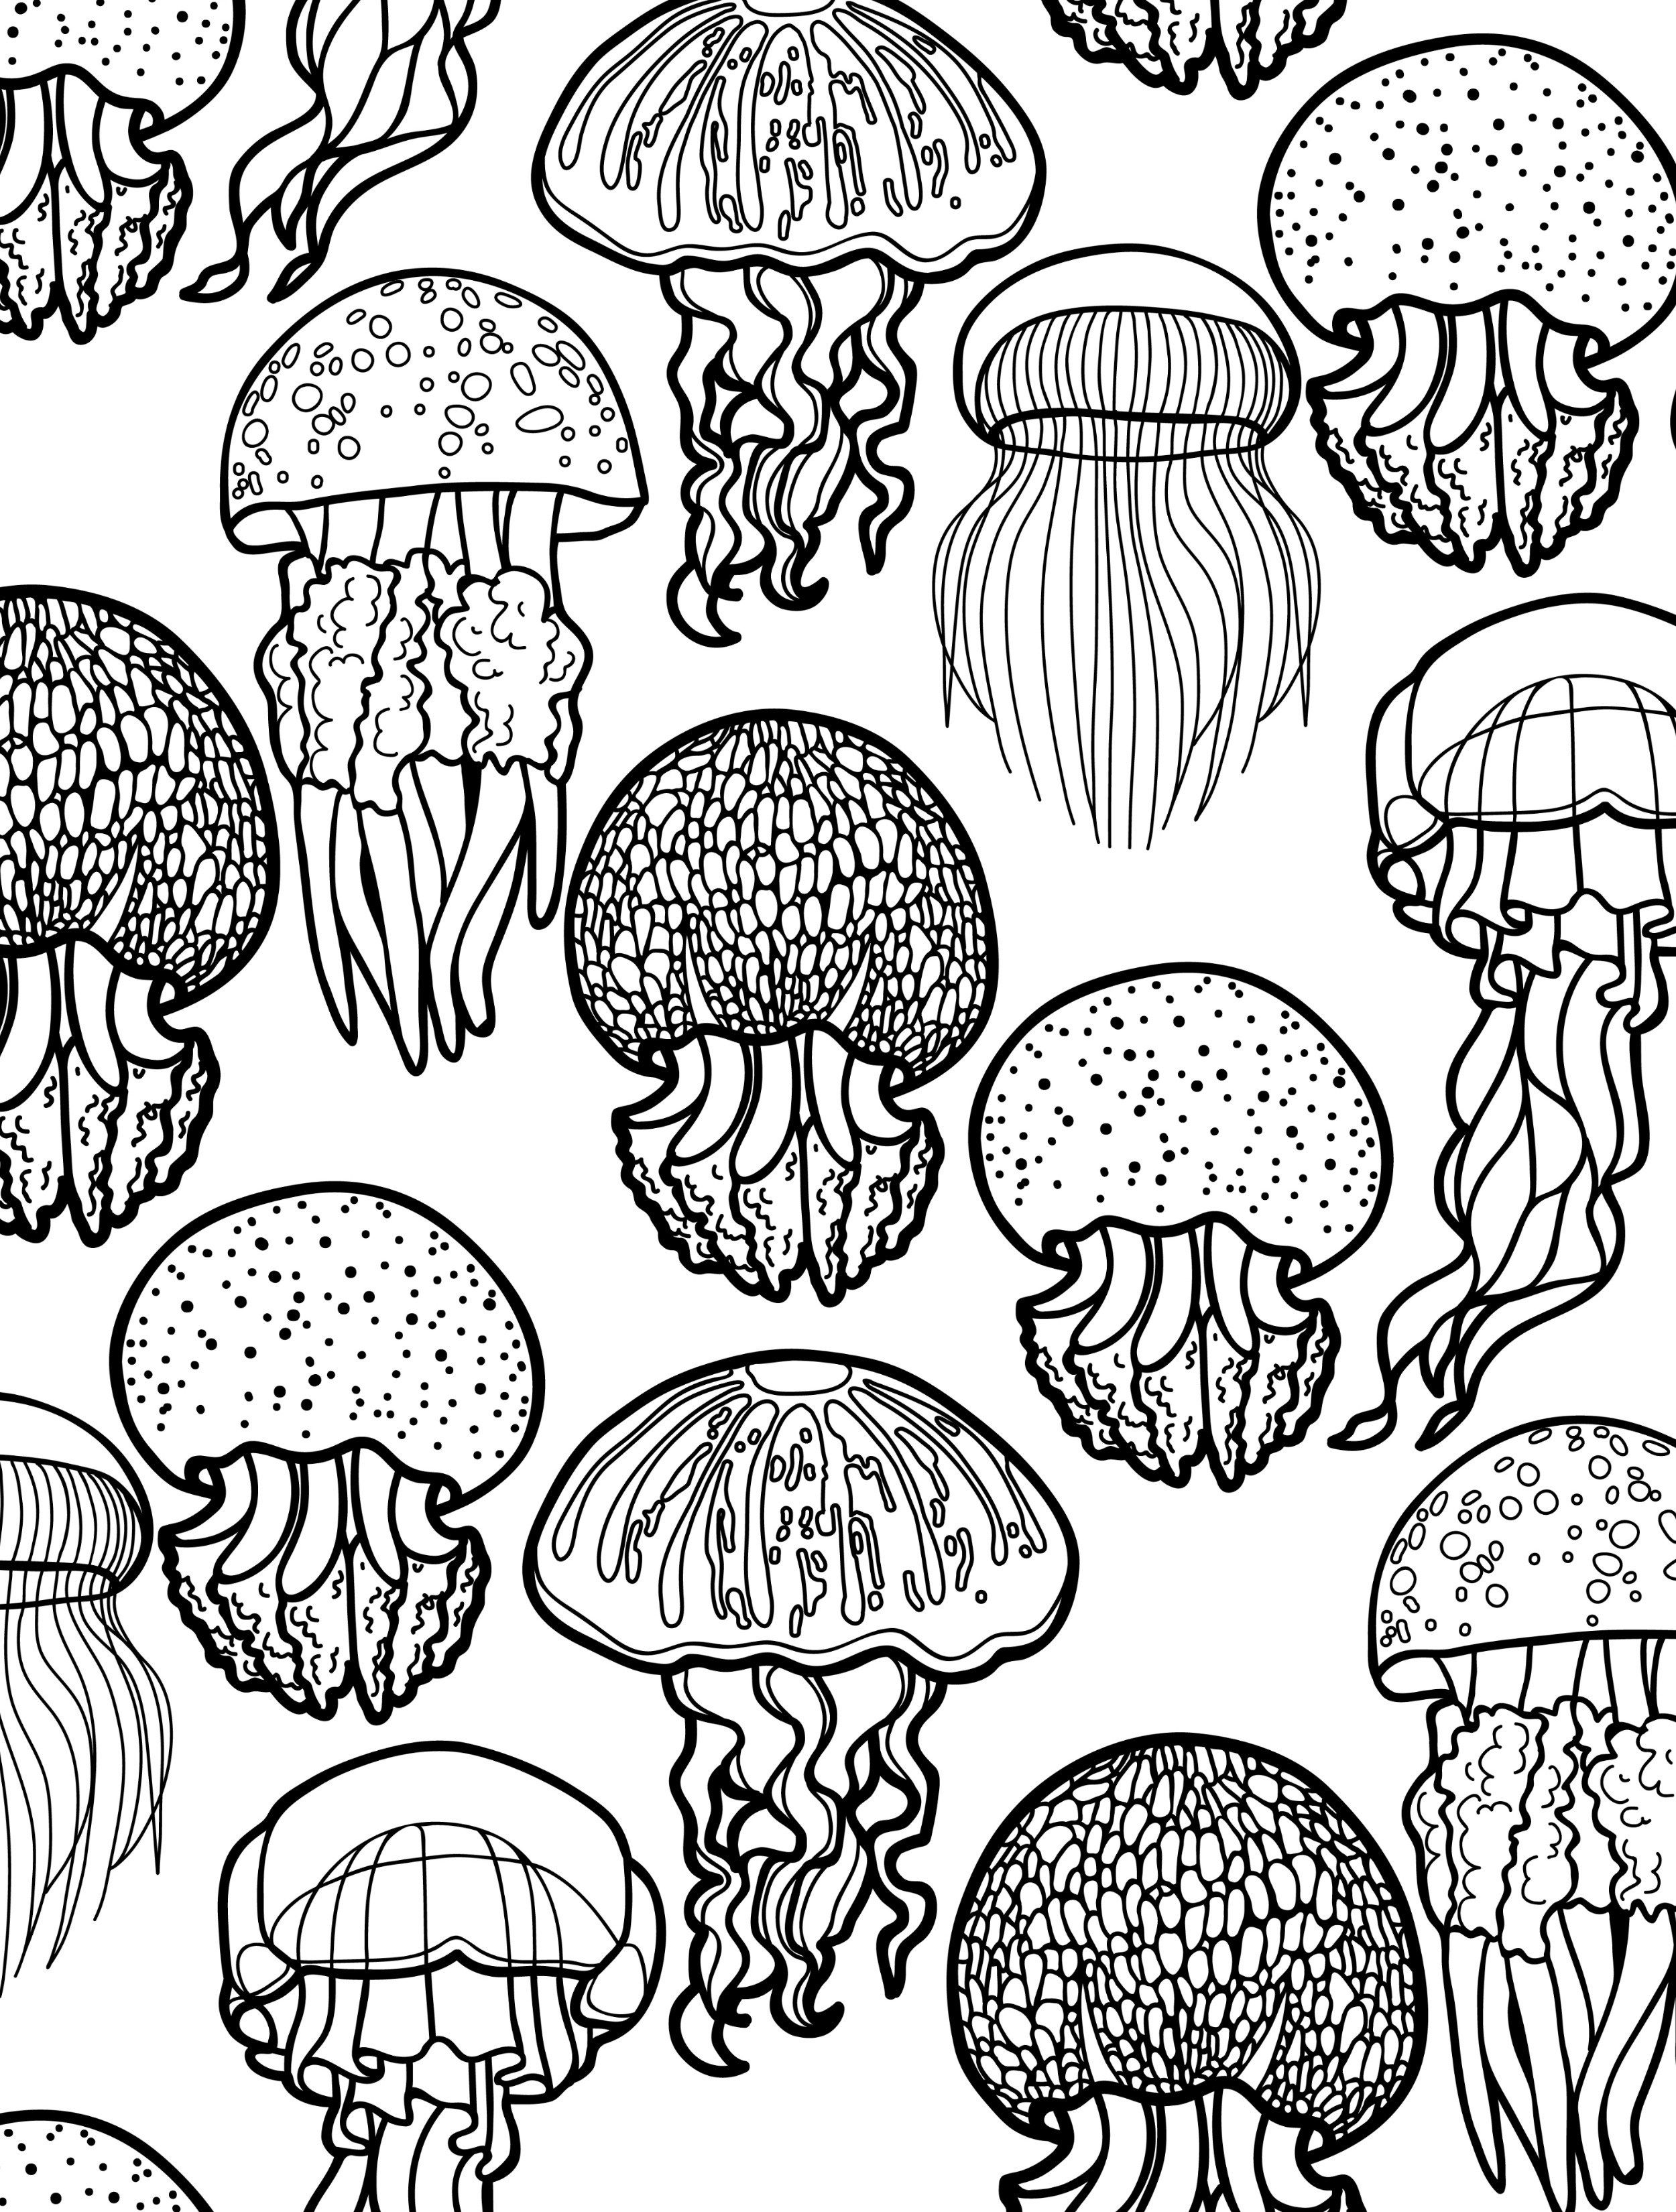 23 Free Printable Insect & Animal Adult Coloring Pages | Adult ...